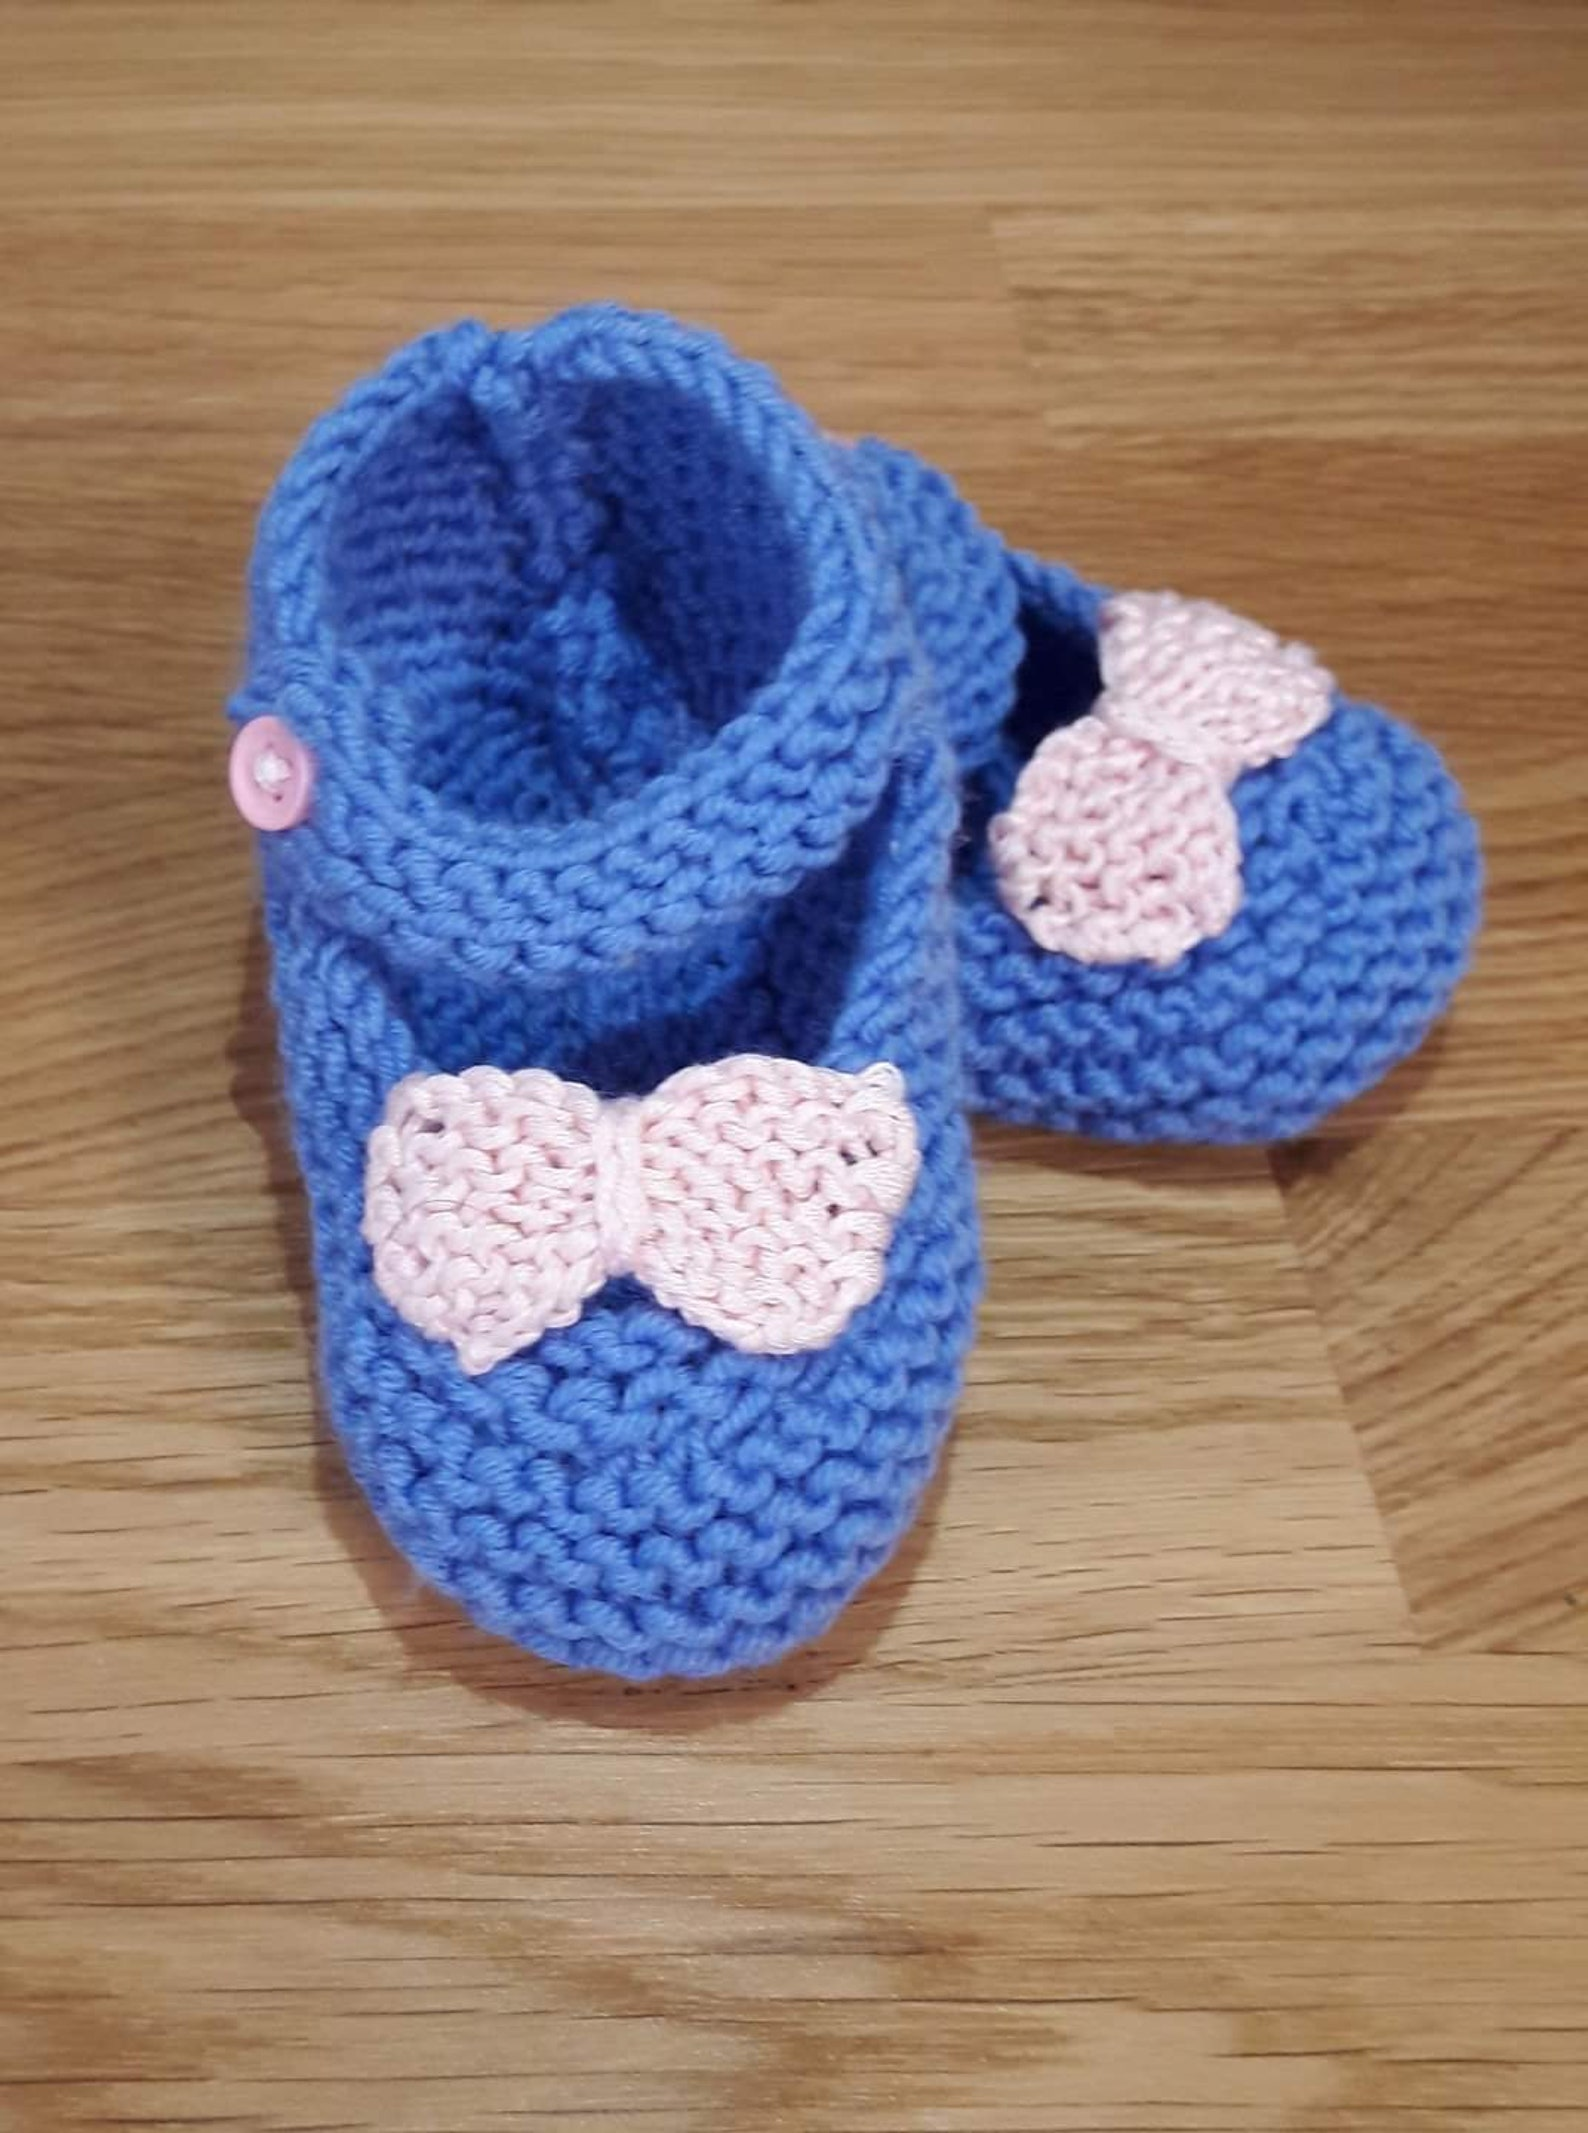 knitted baby booties, handmade baby girl ballet slippers in blue with pink bow, with strap and pink plastic button, gift idea, b